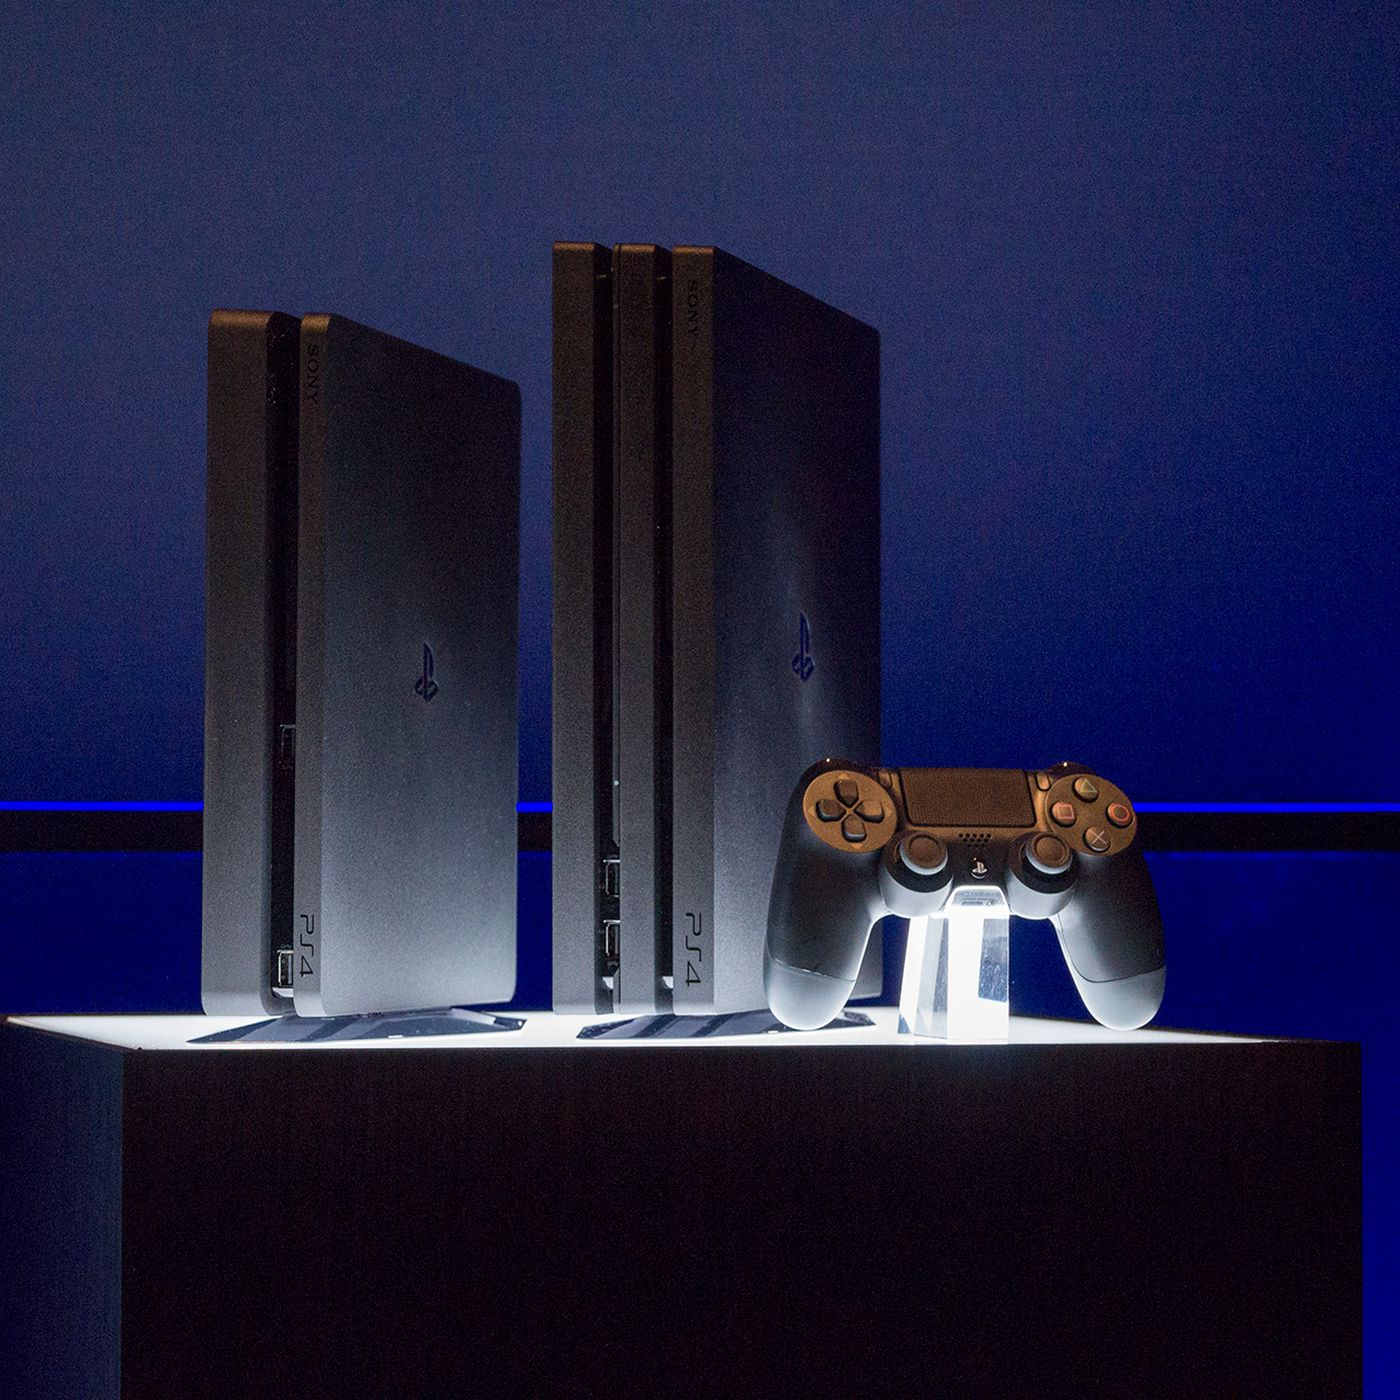 PS4 heading into end of its life cycle, PlayStation CEO says